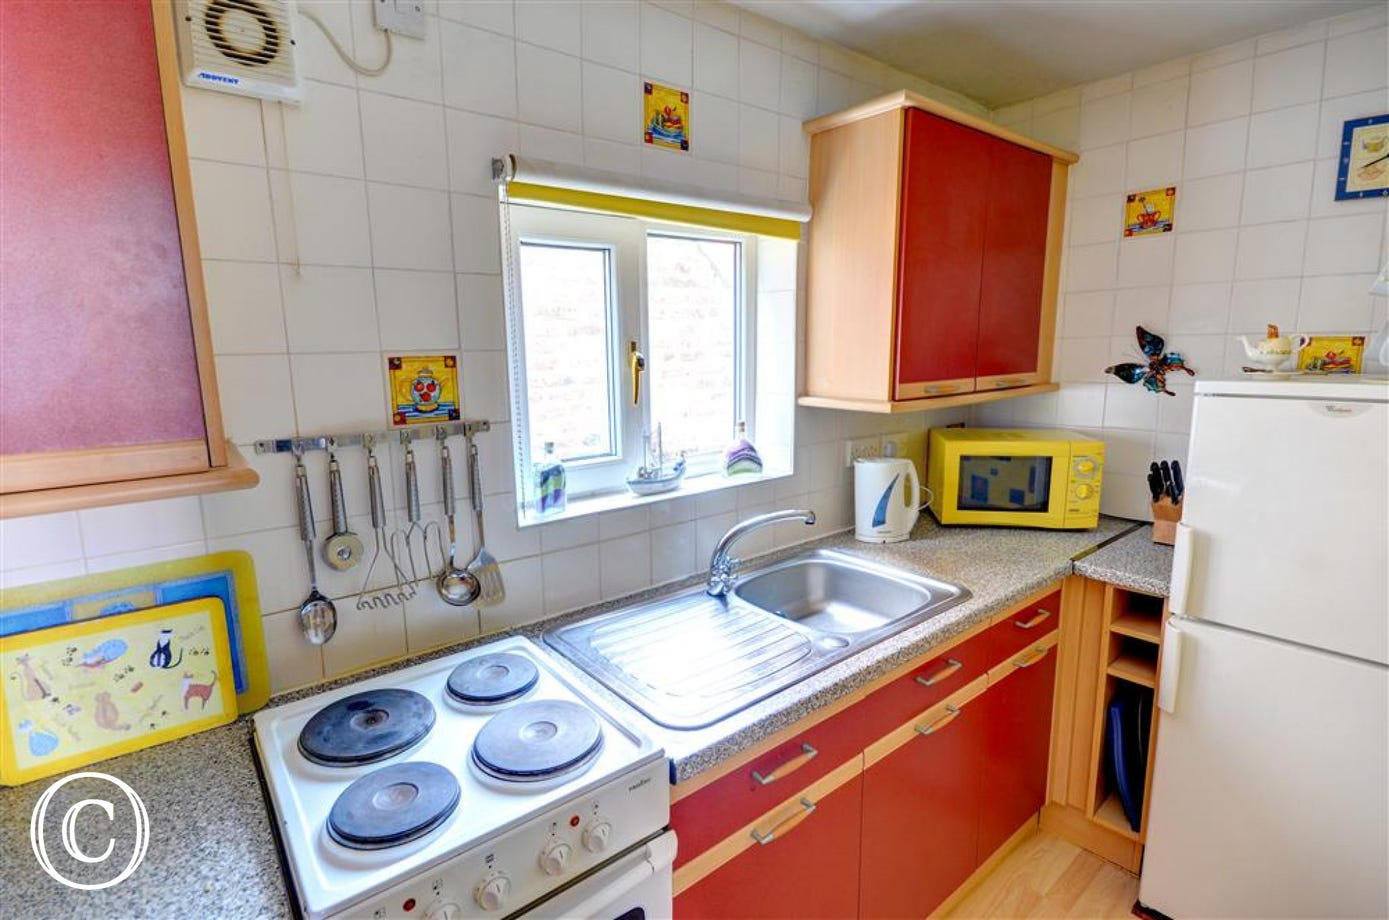 Compact yet well-equipped Kitchen.